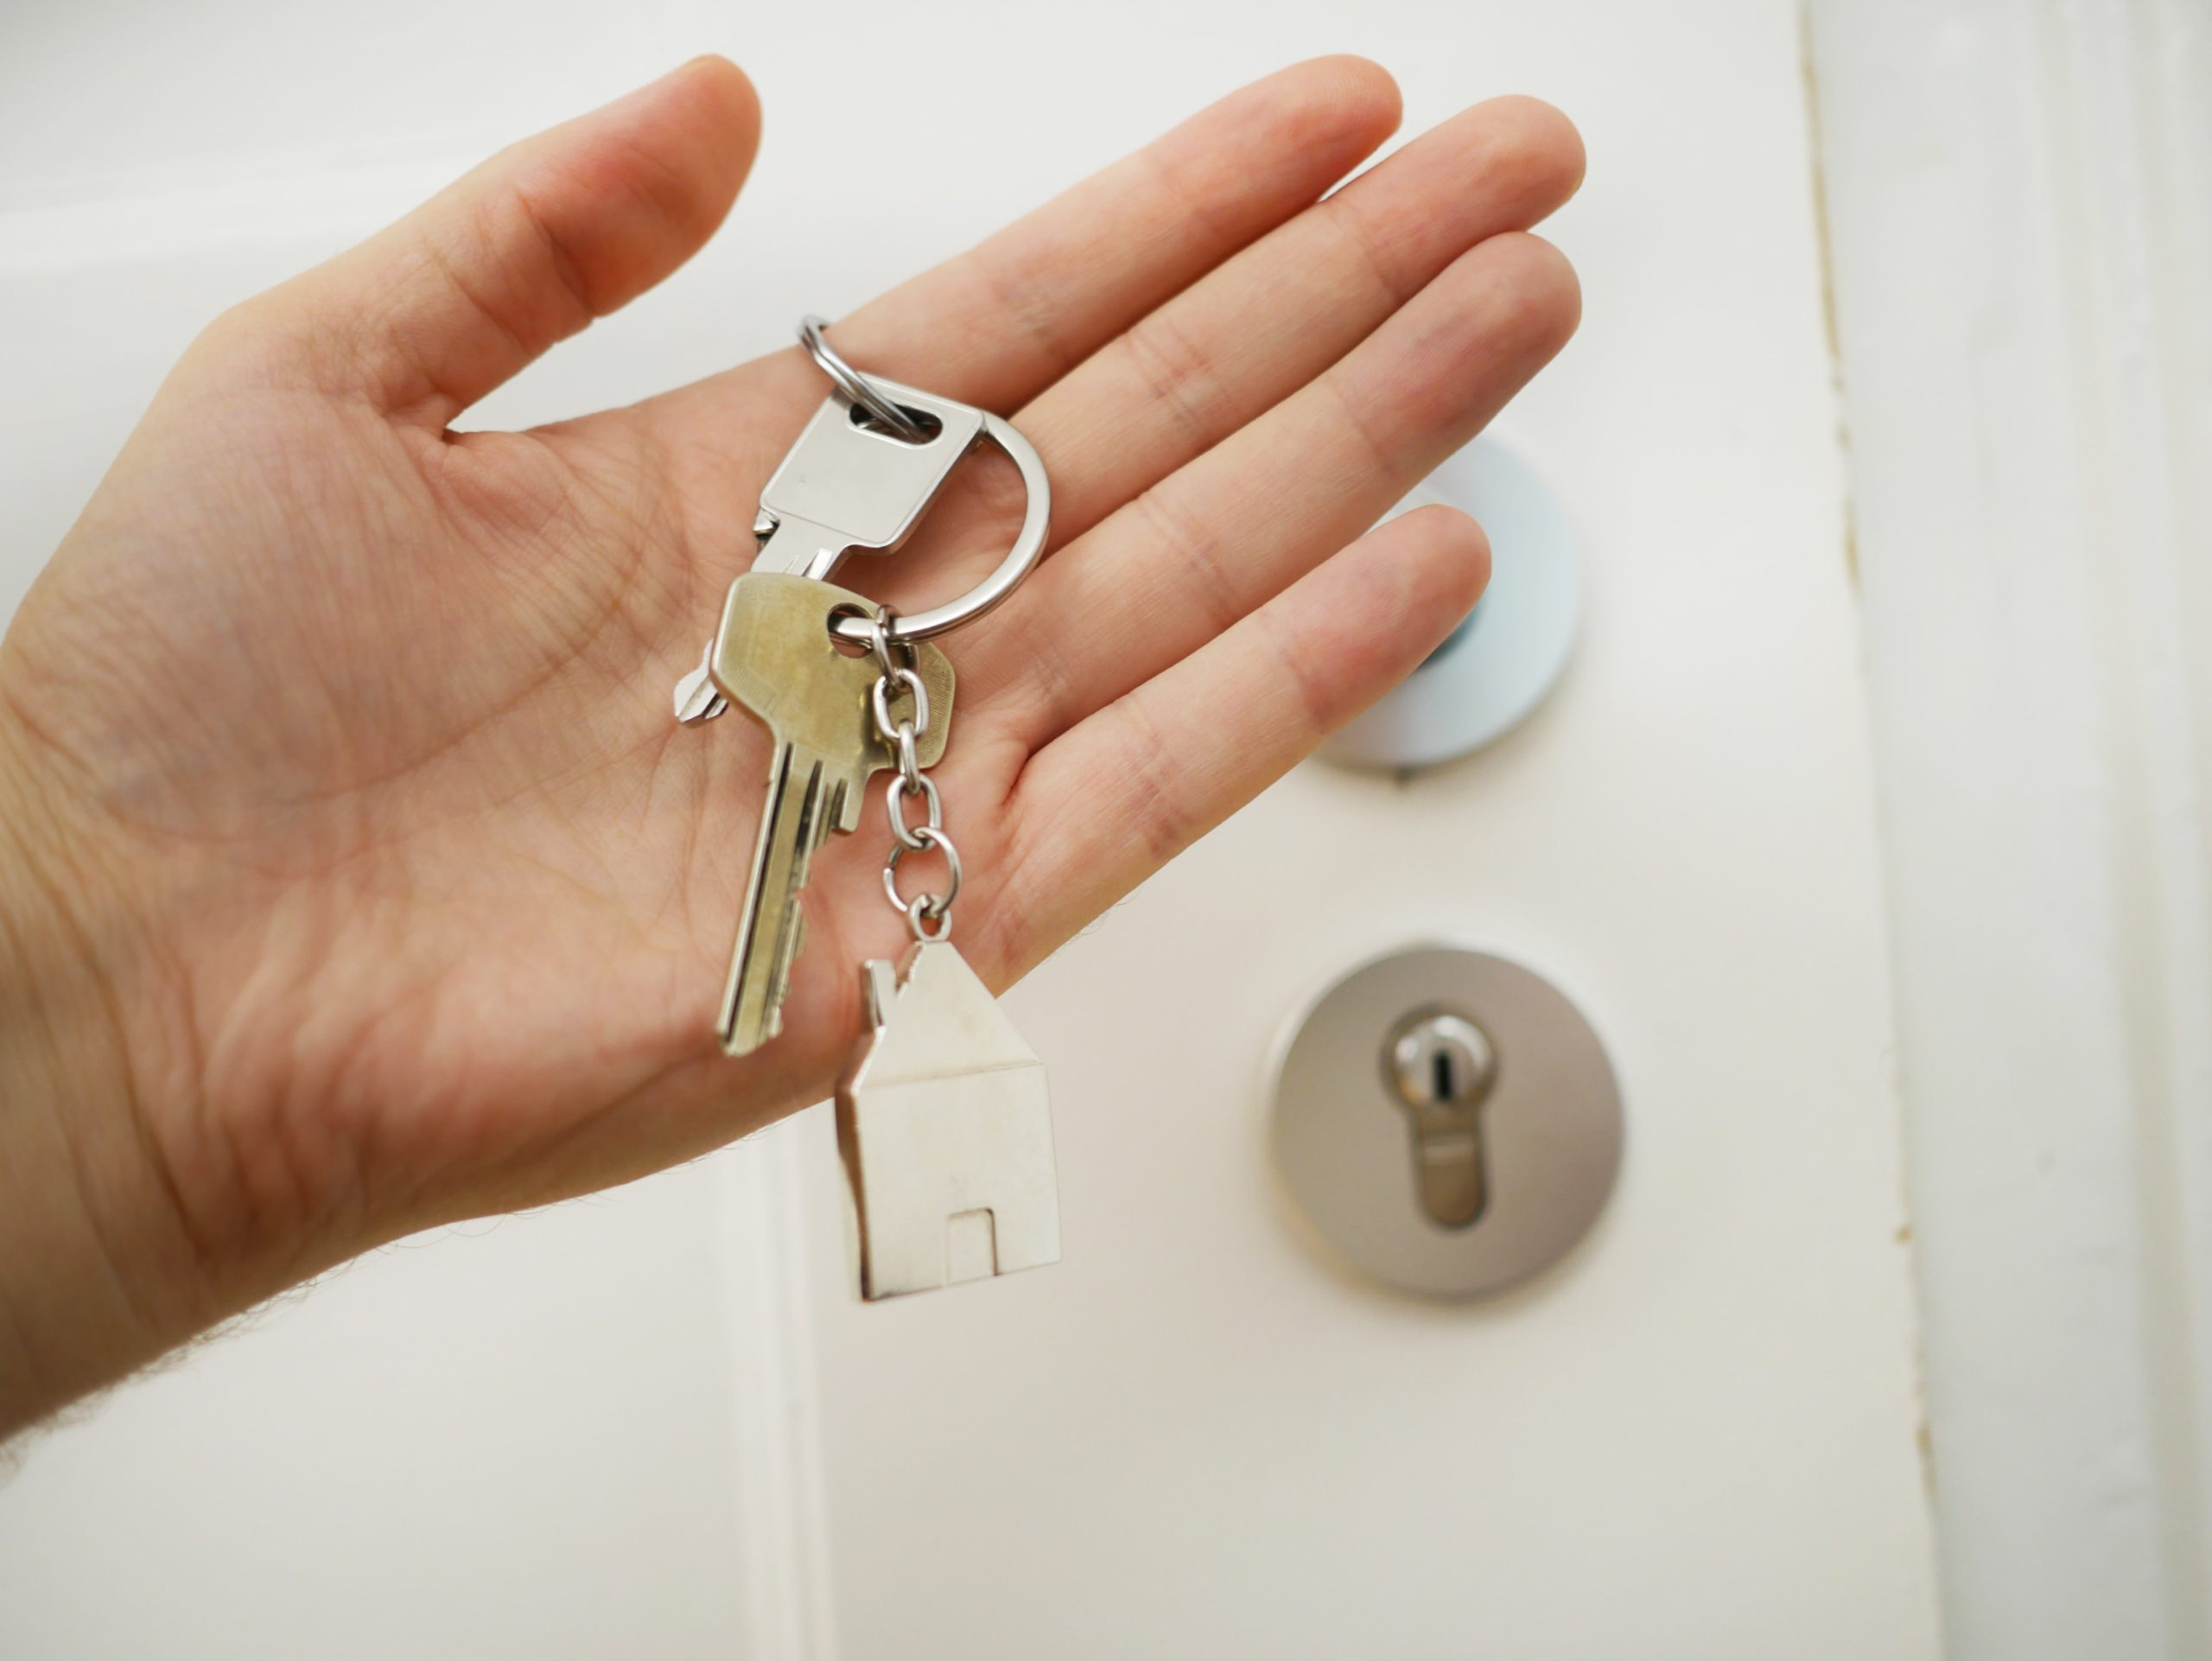 Pests to avoid when moving house